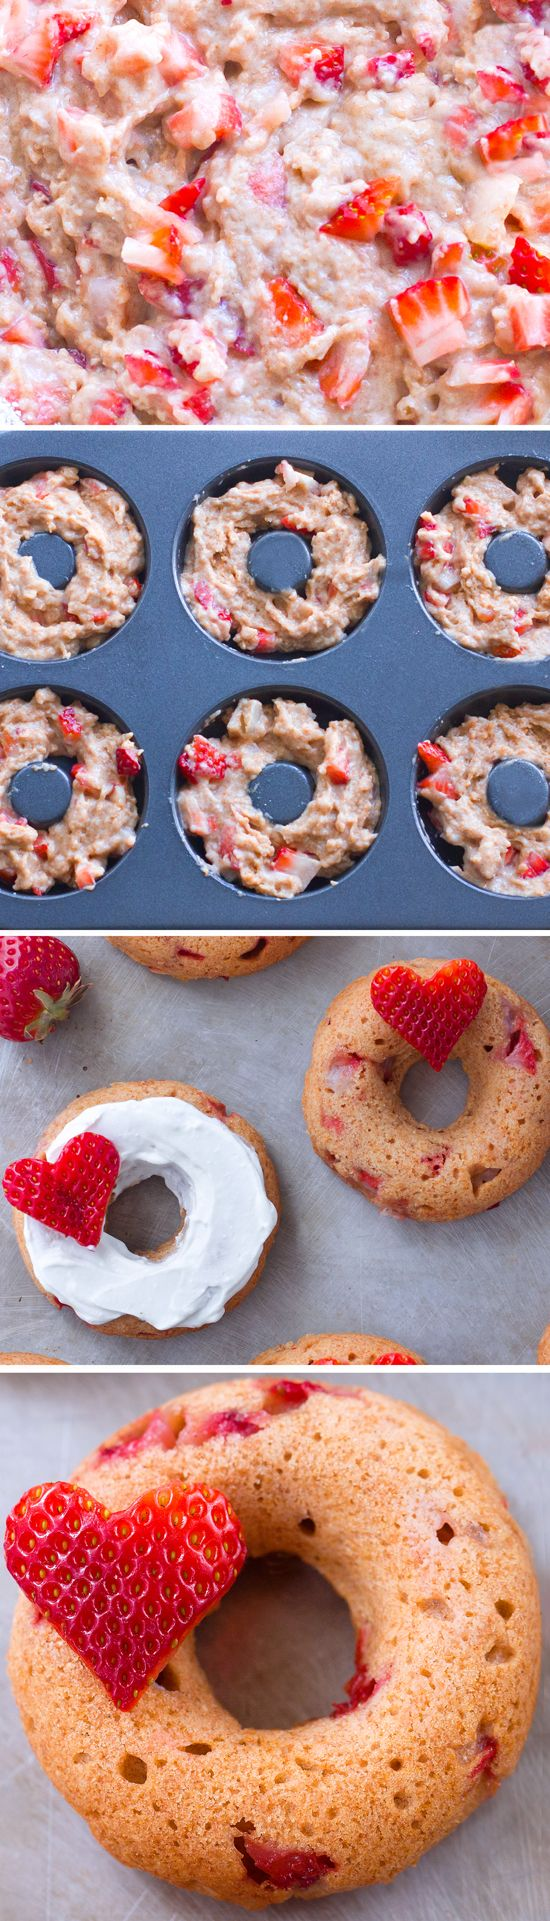 Super Soft BAKED Strawberry Donuts, SO GOOD!